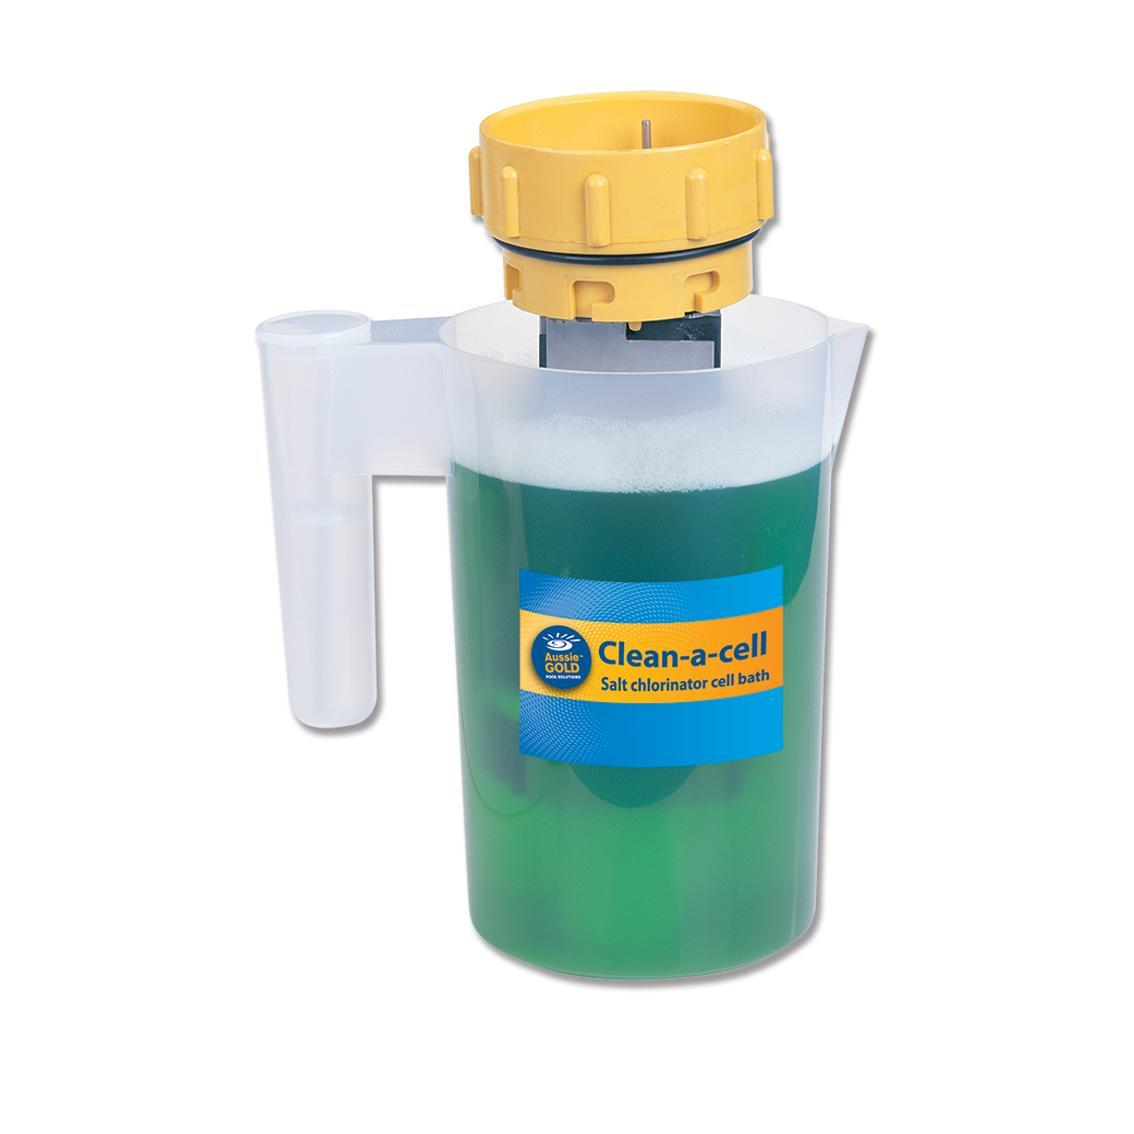 Aussie Gold Clean A Cell Jug - Chlorinator Cell Cleaning Kit-Cleaning Equipment-Mr Pool Man